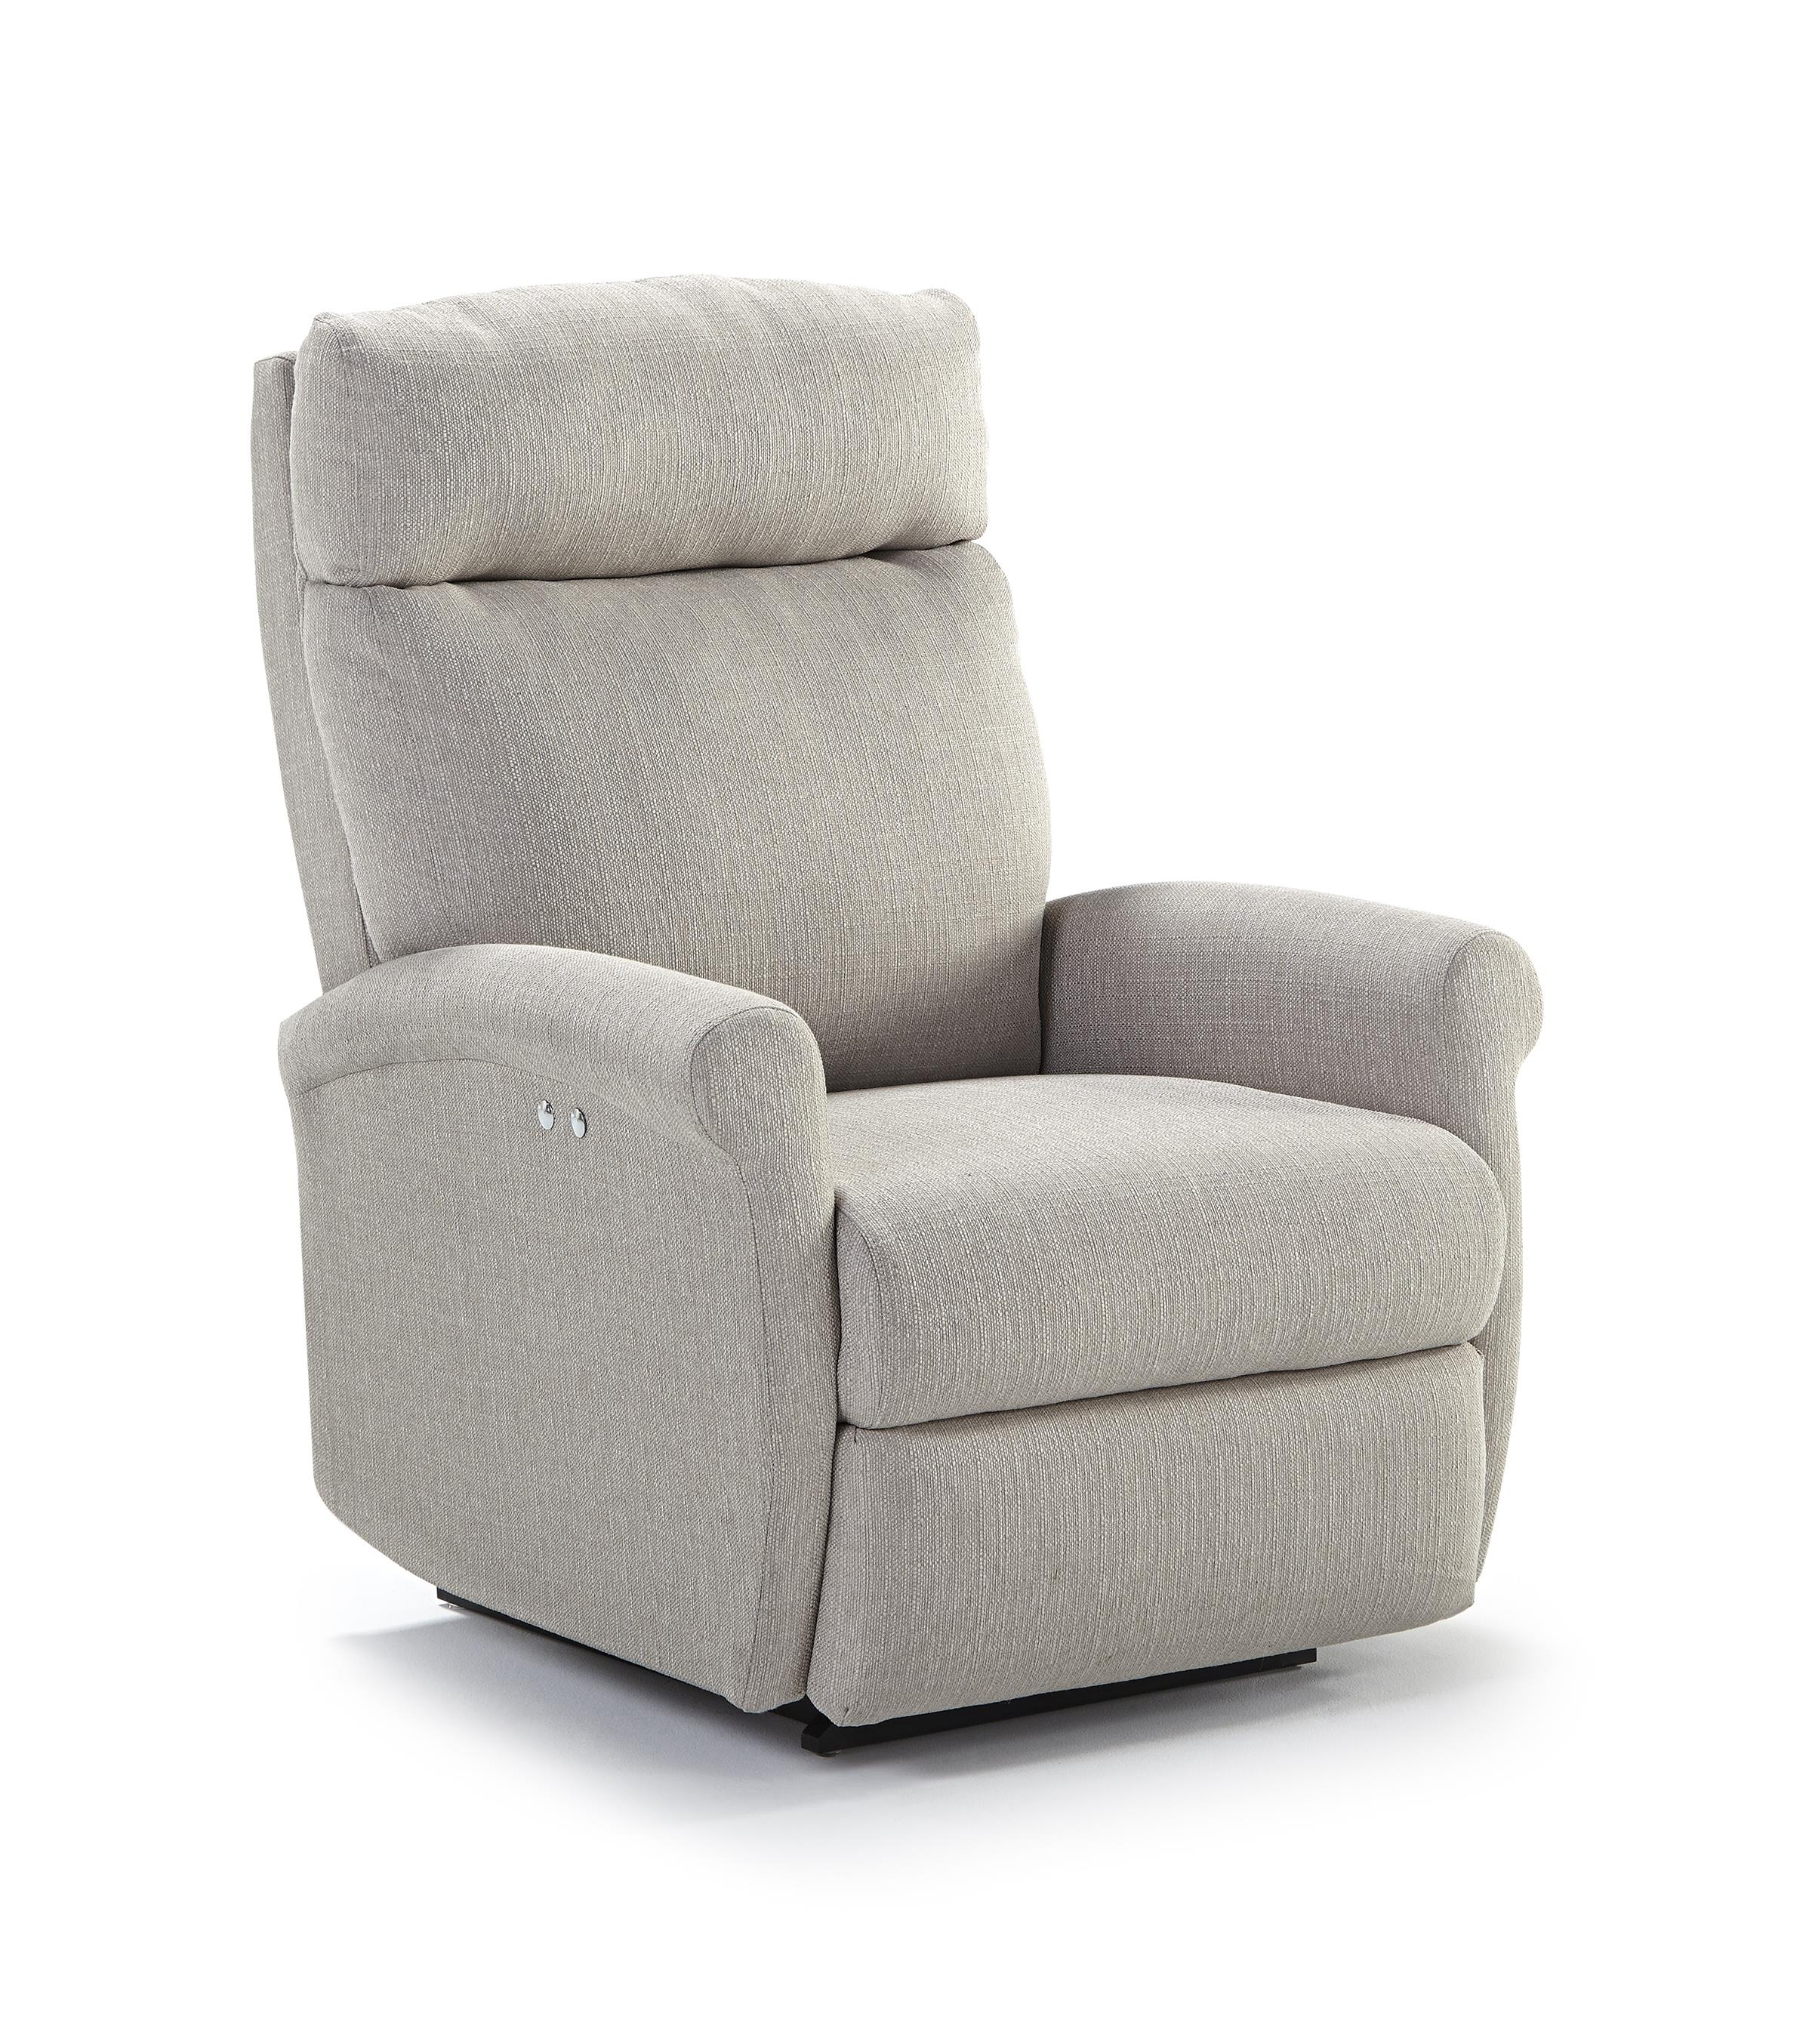 Codie Power Swivel Glider Recliner by Best Home Furnishings at Baer's Furniture